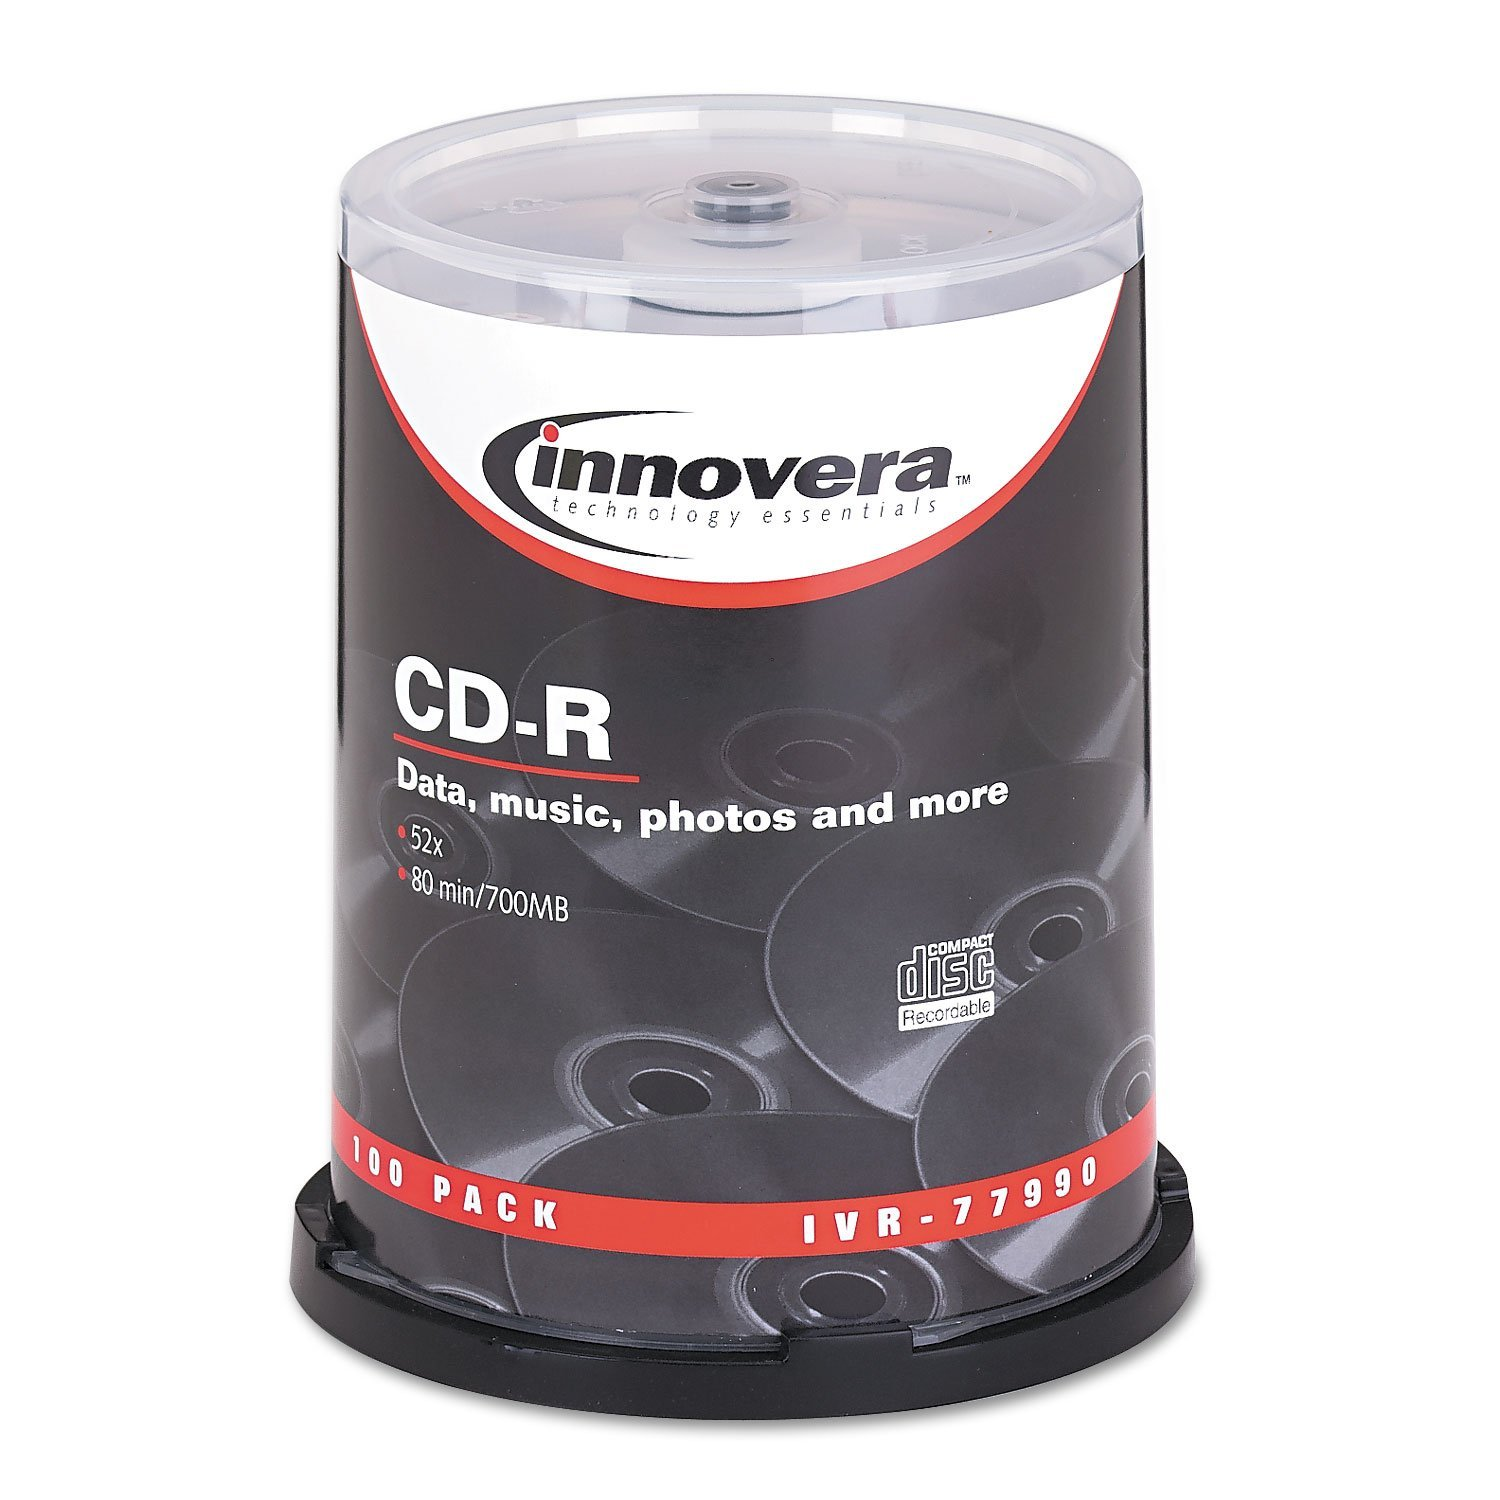 IVR77990 - CD-R Discs, Speed Spindle 700MB80min 100Pack Recordable 700MB80MIN Innovera CDR Discs Silver Maximum IVR77990 by 52x Recording By Innovera